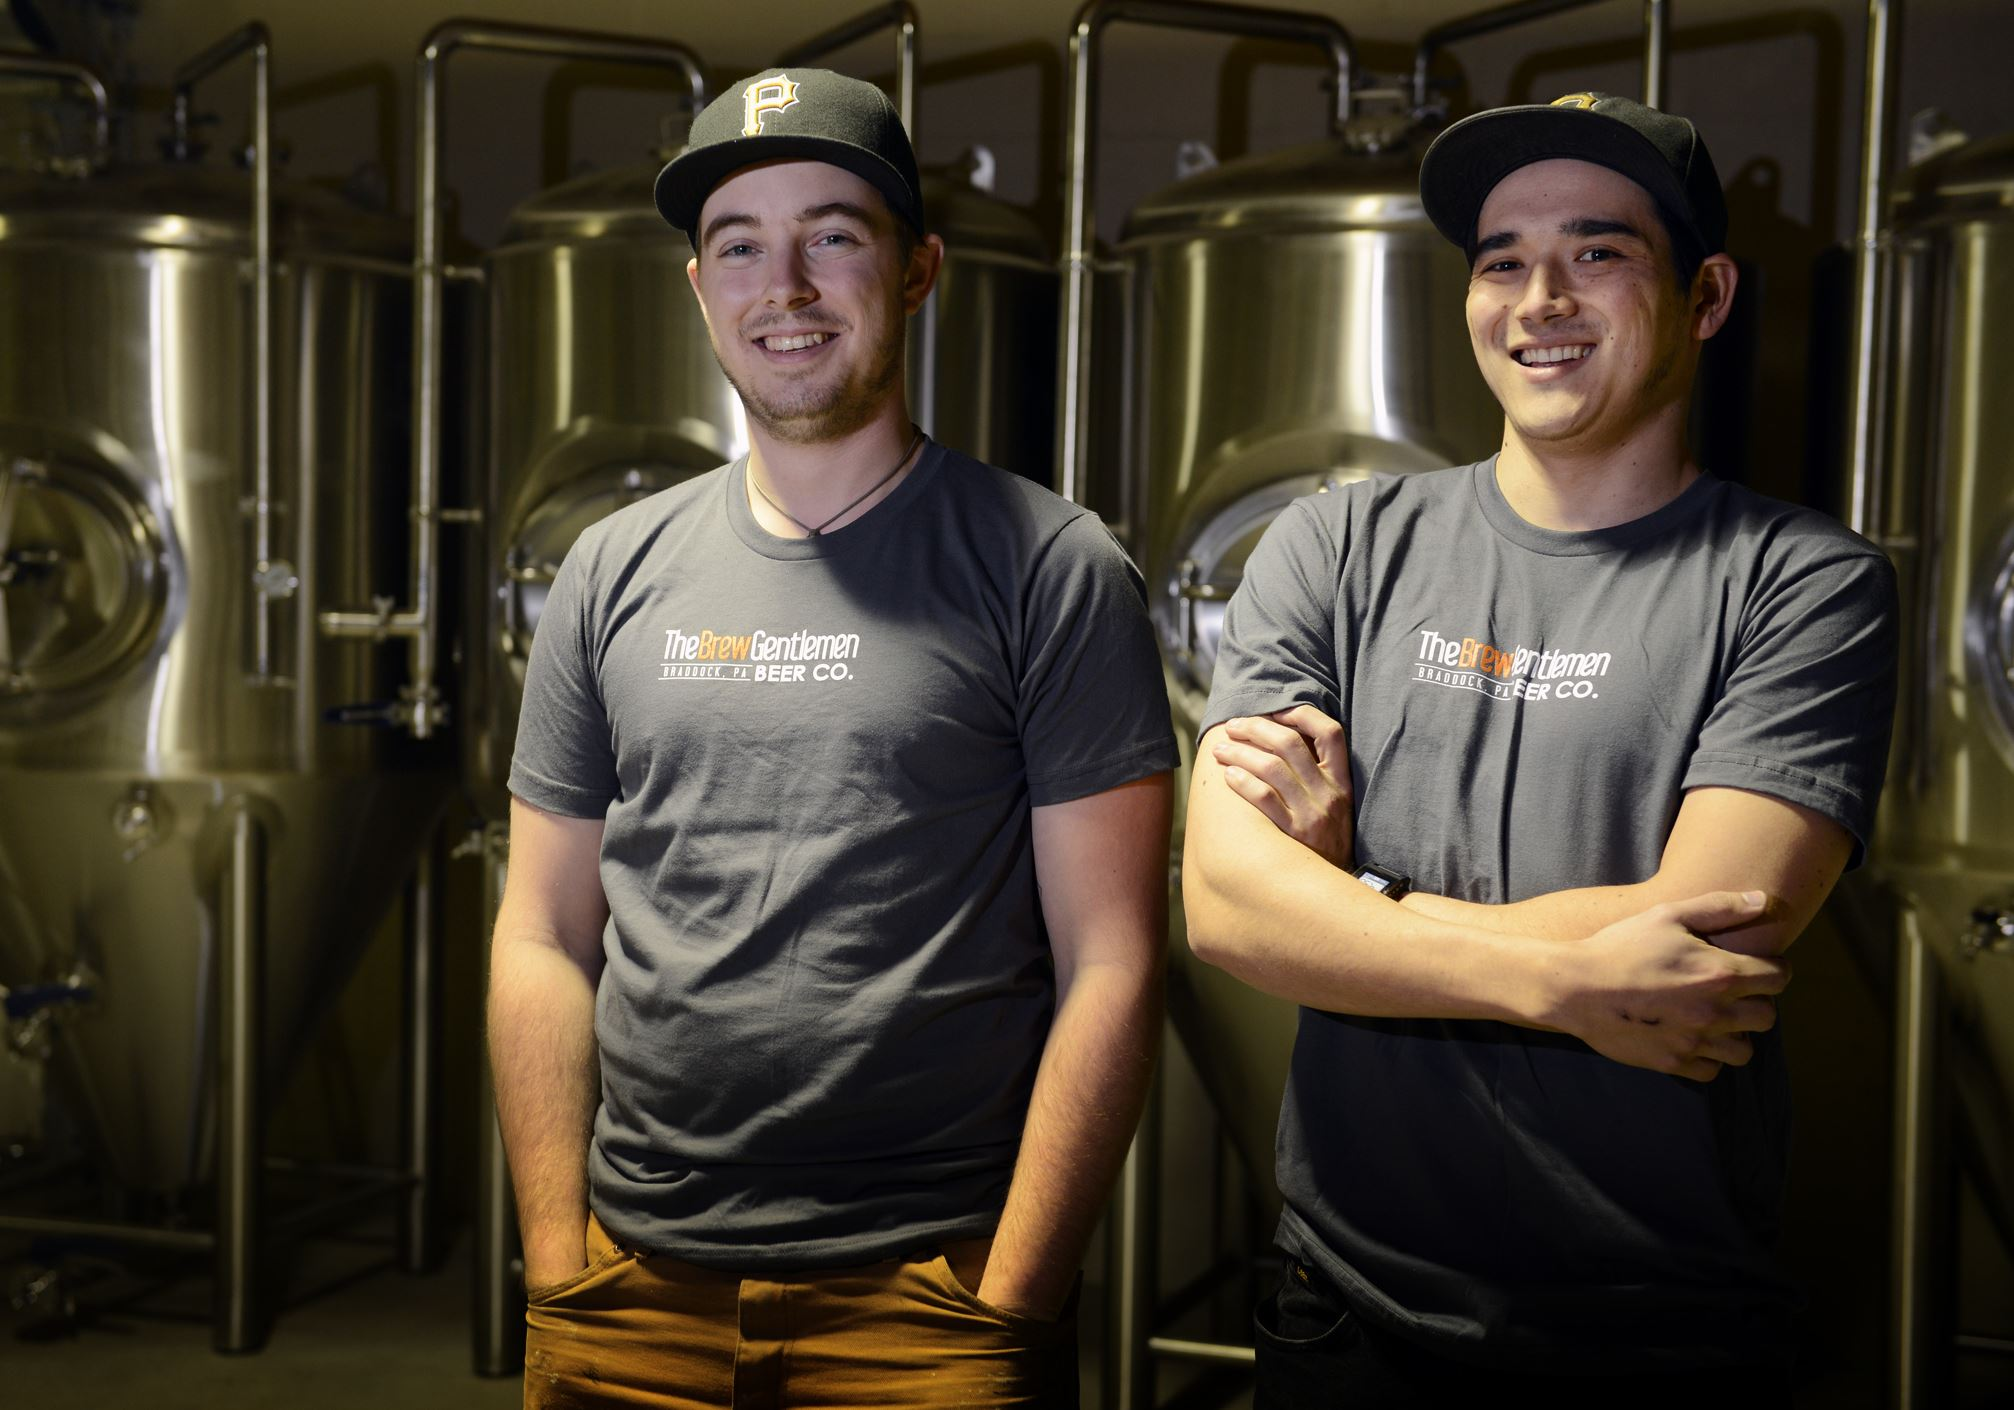 201131211bwBeerMag01 Asa Foster, left, and Matt Katase in front of their fermenters for their Braddock company, The Brew Gentlemen Beer Company.